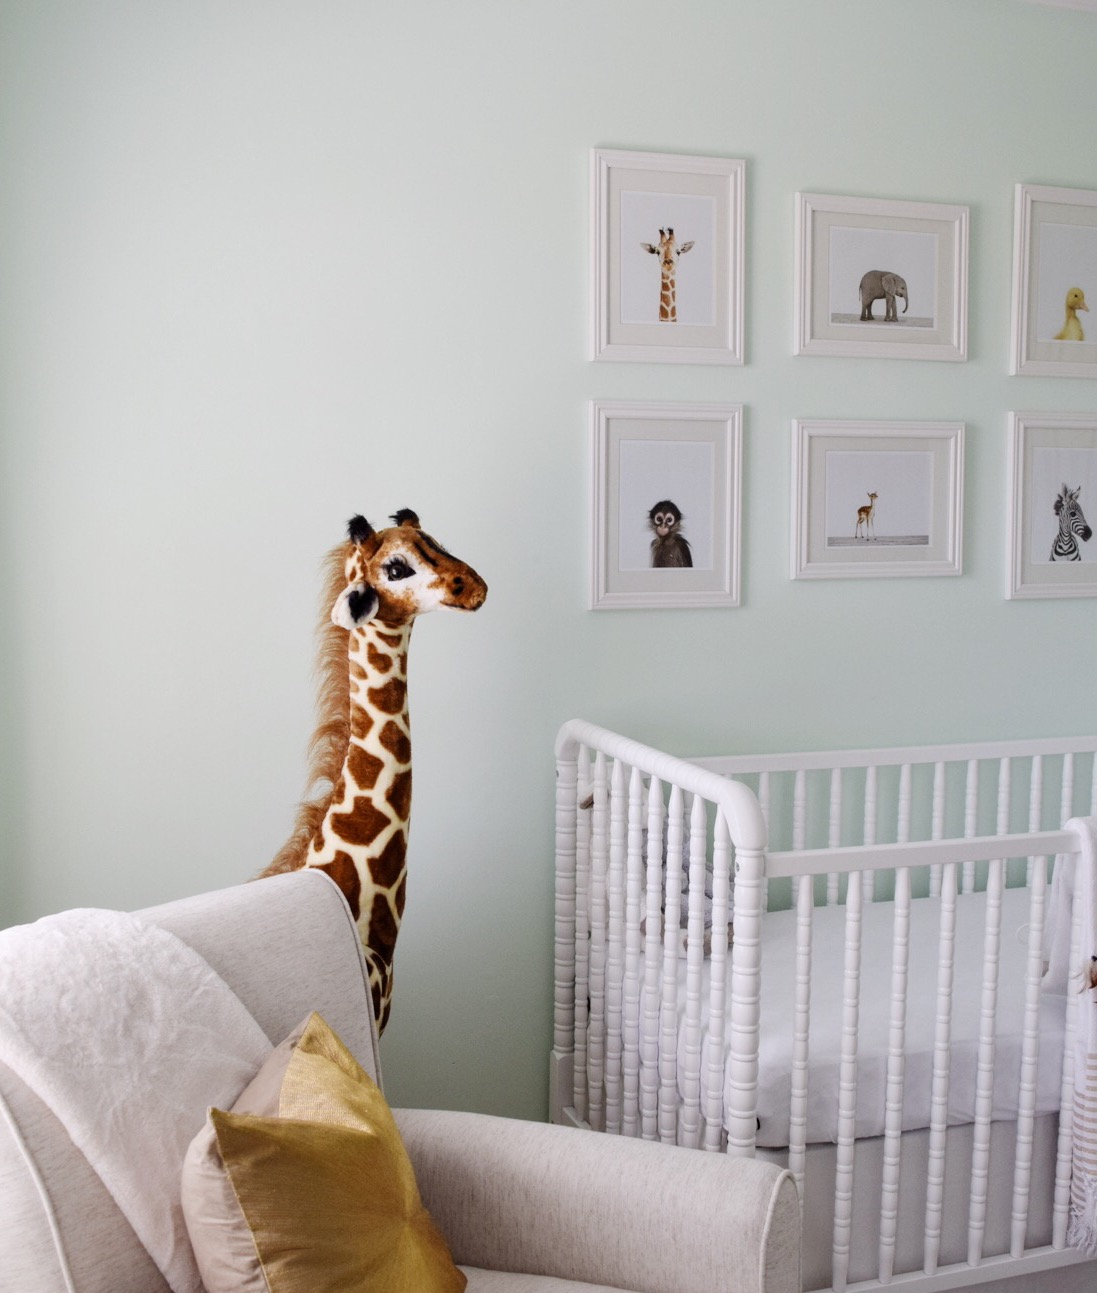 Next A Theme I Am Not One To Swoon Over The Typical Baby Items But Did Want Room Still Reflect Tiny Little Angel That Will Soon Be Joining